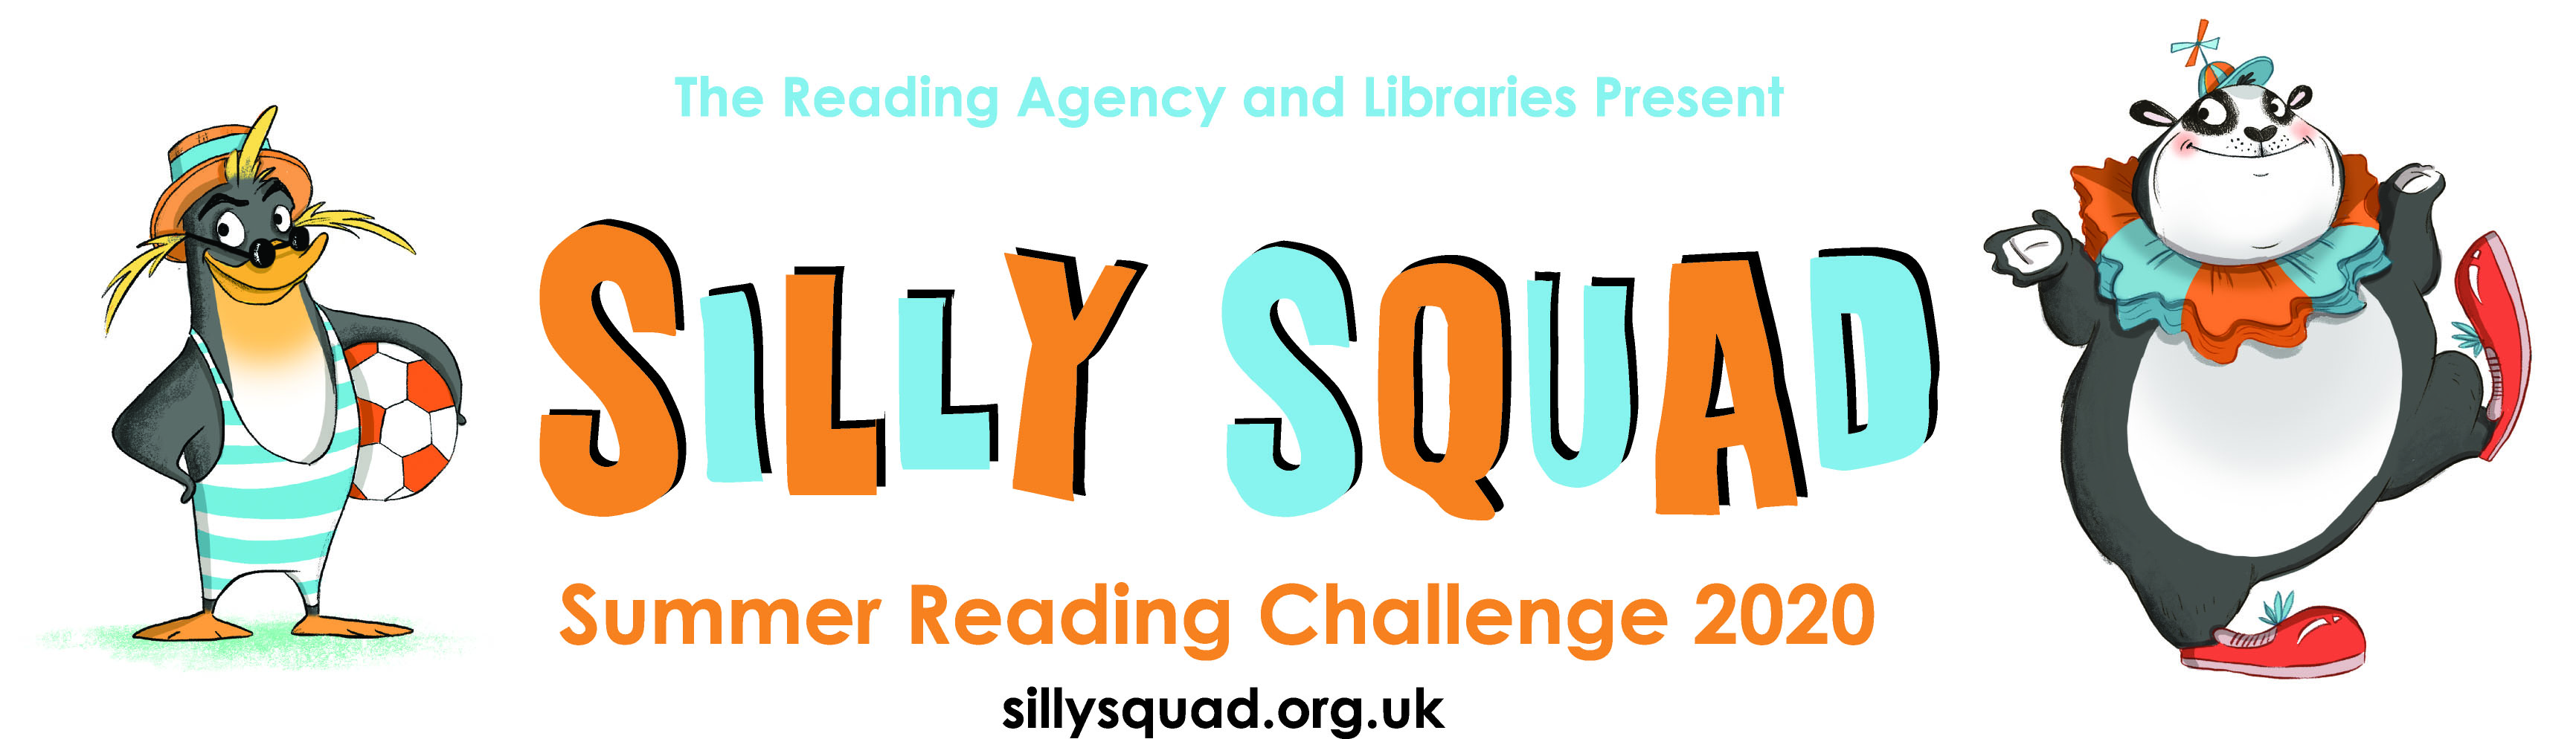 The Reading Agency's 'The Silly Squad'